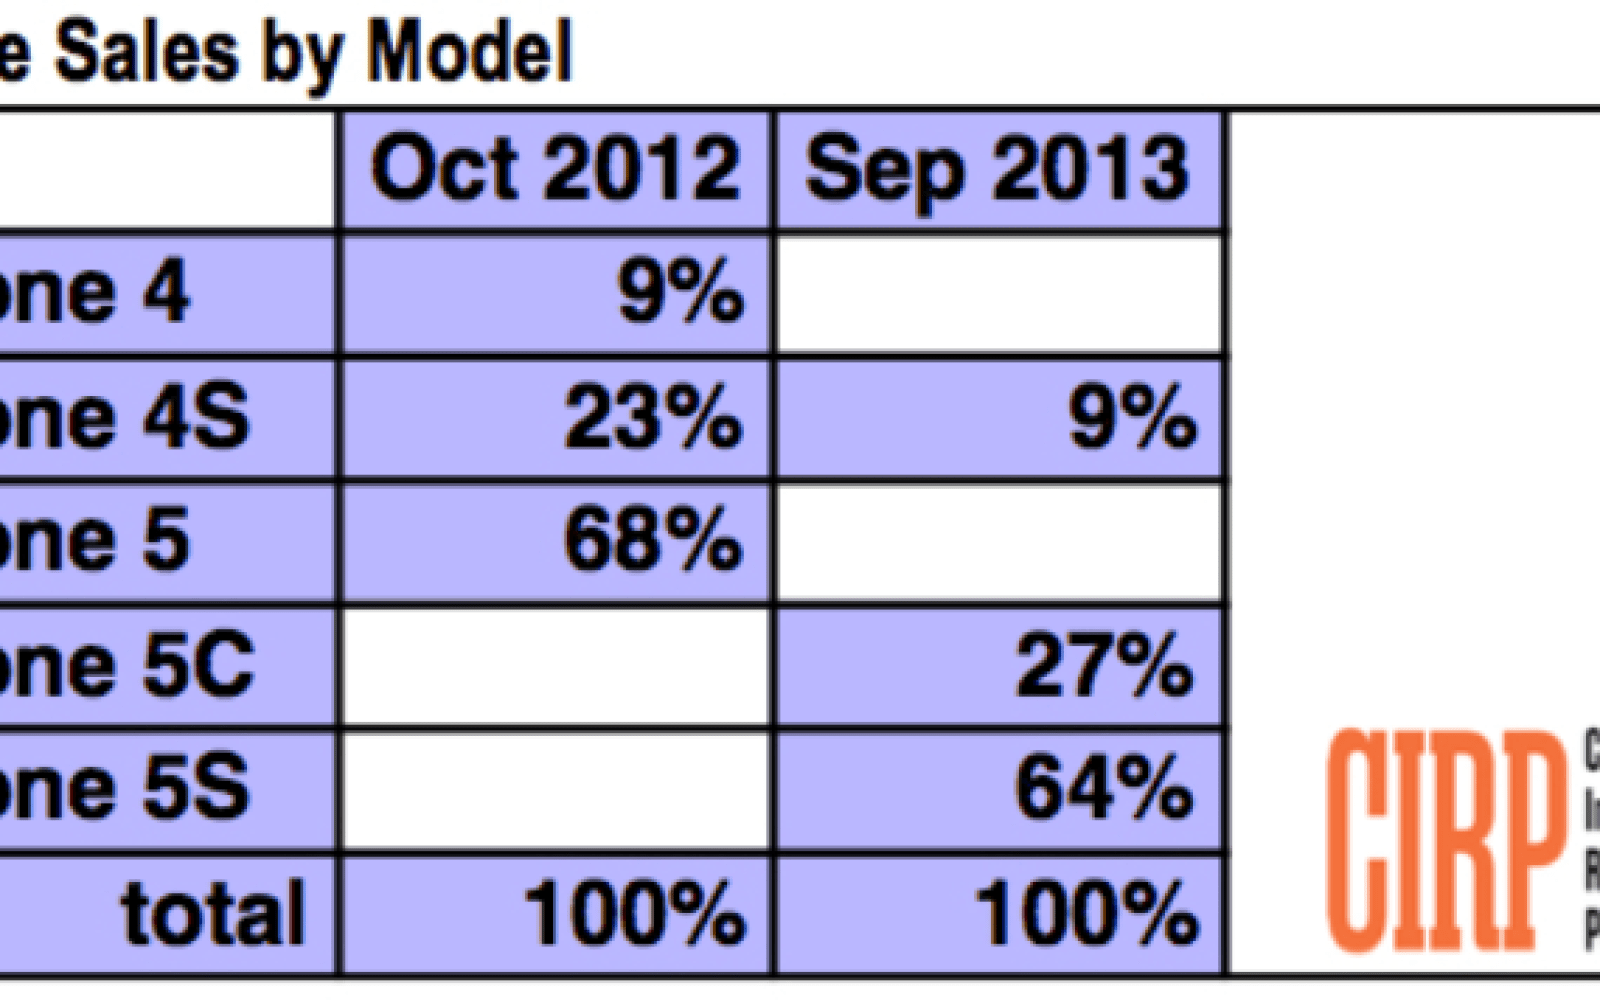 Twice as many people buying iPhone 5s as iPhone 5c (latest claim)